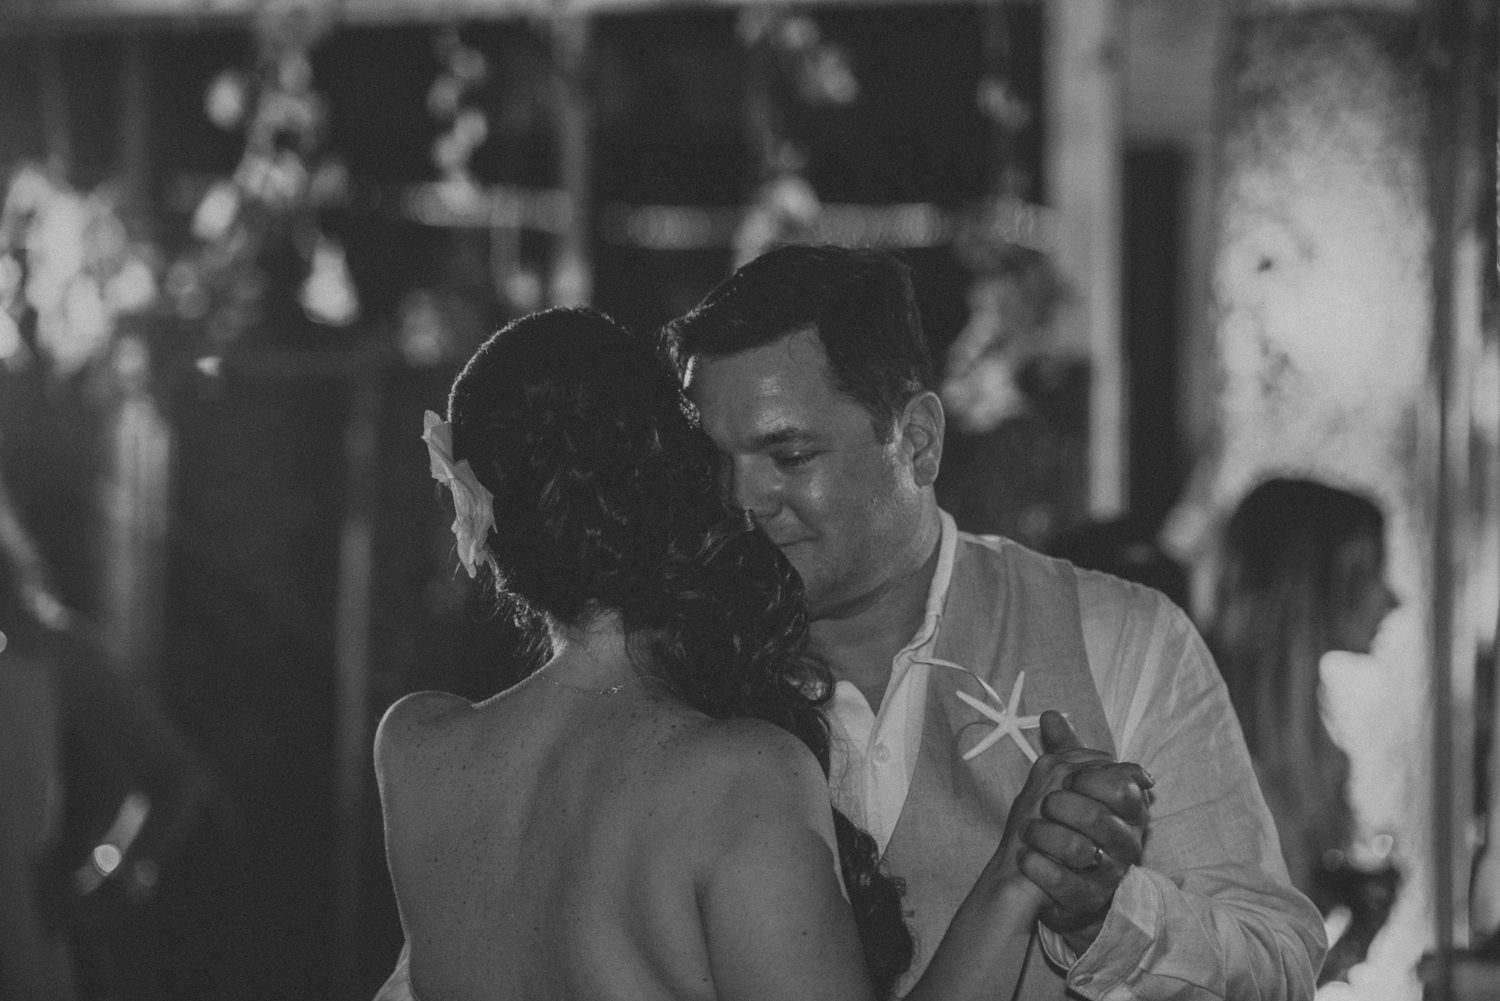 Erin Colin Fort Zachary Taylor Rooftop Cafe Key West Wedding Photographer 57 - Erin & Colin   Key West Wedding Photographer   Fort Zachary Taylor